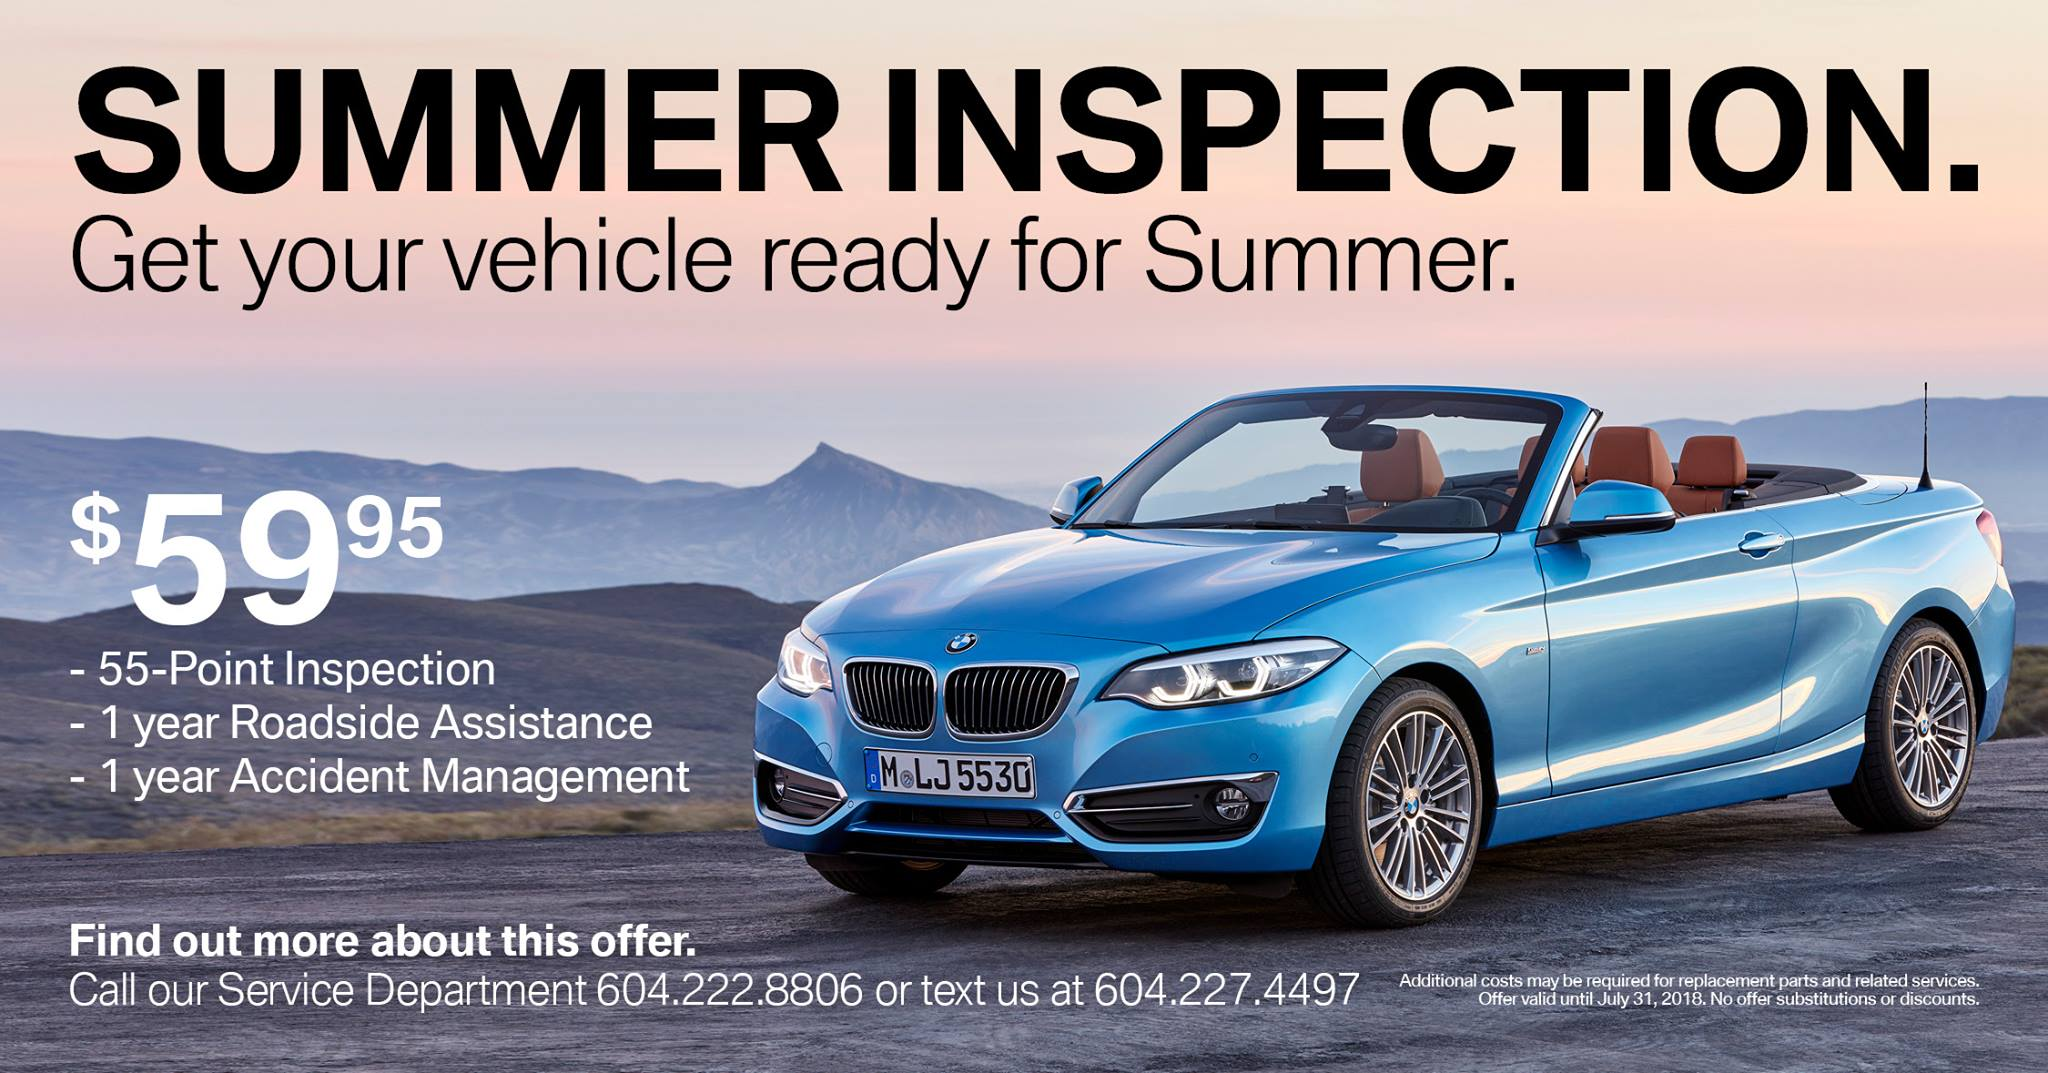 Brian-jessel-summer-inspection